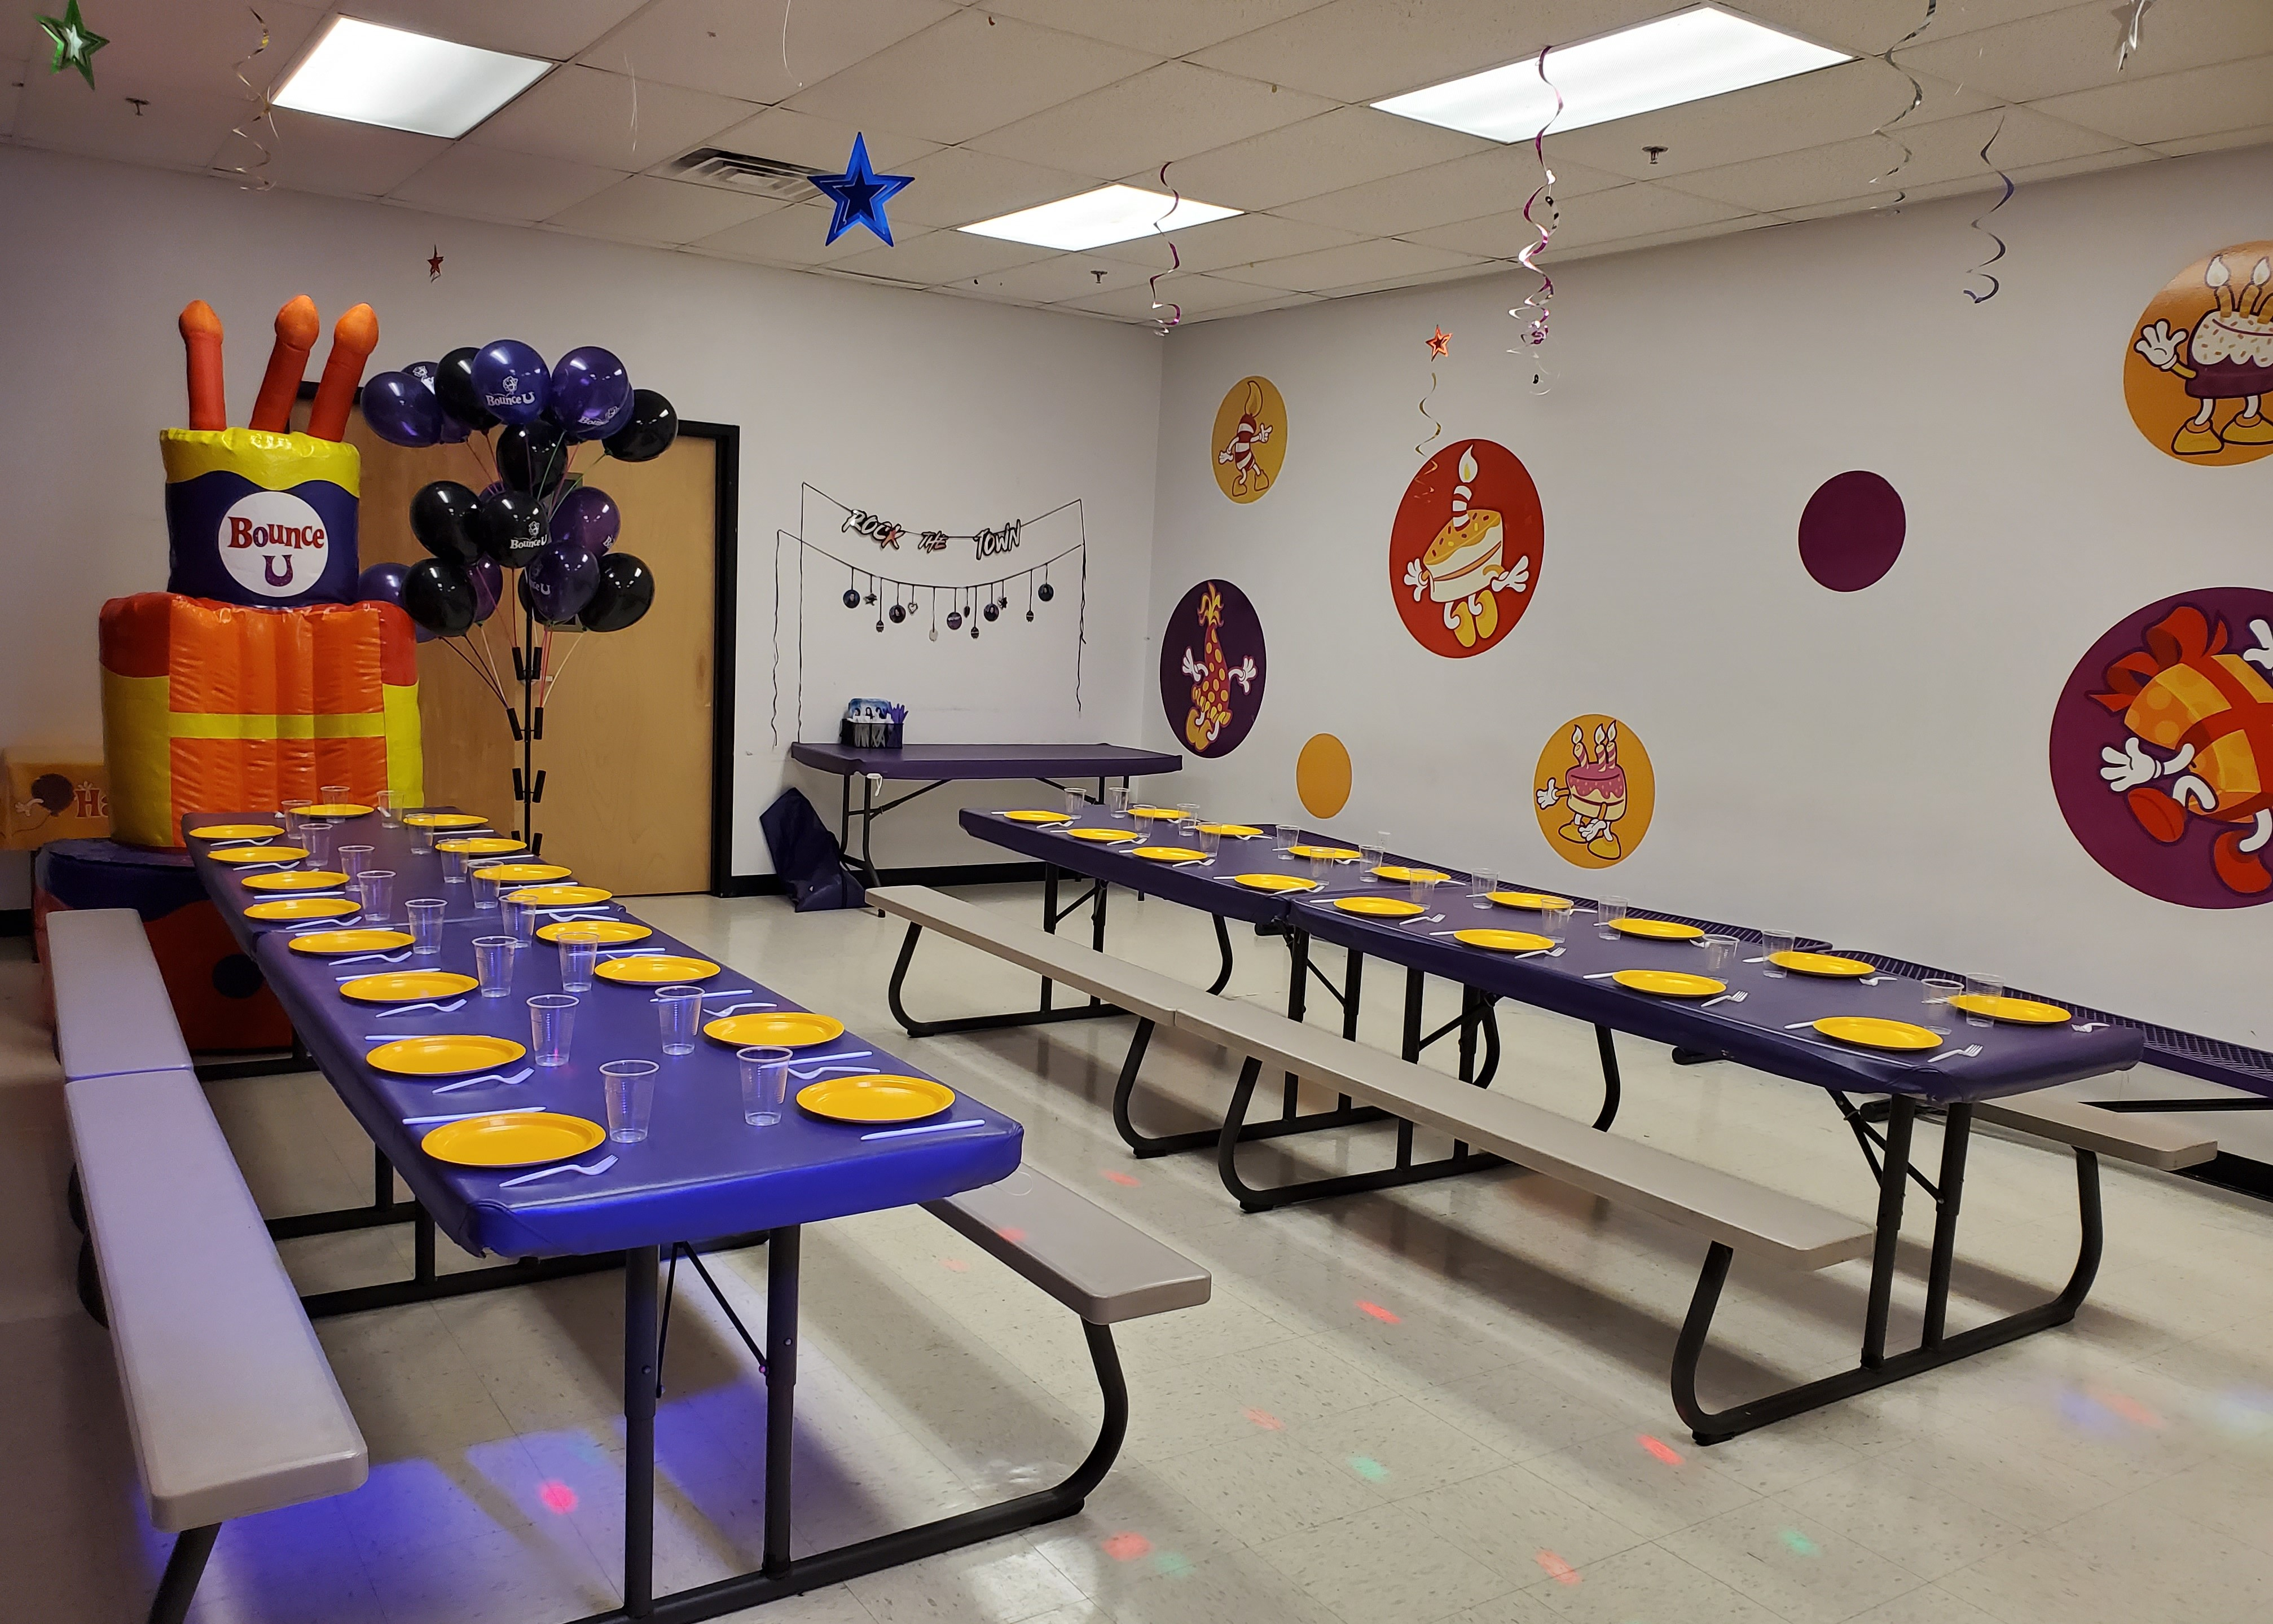 BounceU birthday party room with tables and birthday throne for private parties.